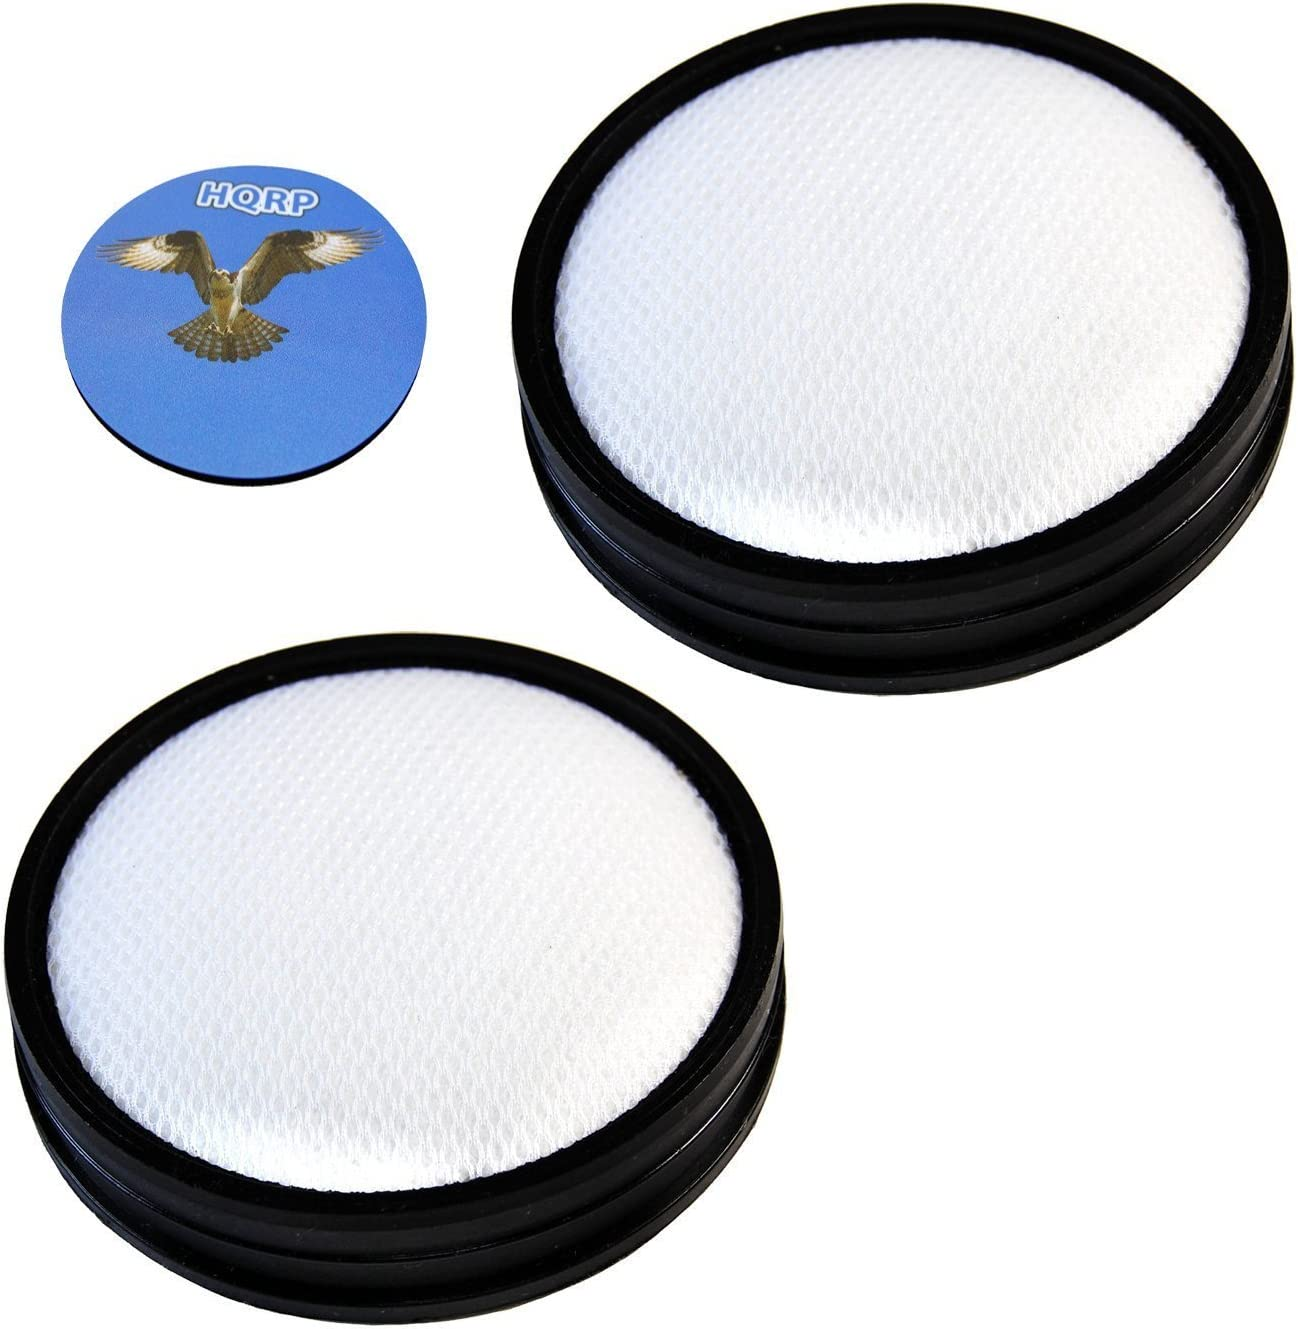 HQRP 2- Pack Washable Primary Filters compatible with Hoover UH70931PC WindTunnel 3 Pro Pet Bagless Upright plus HQRP Coaster